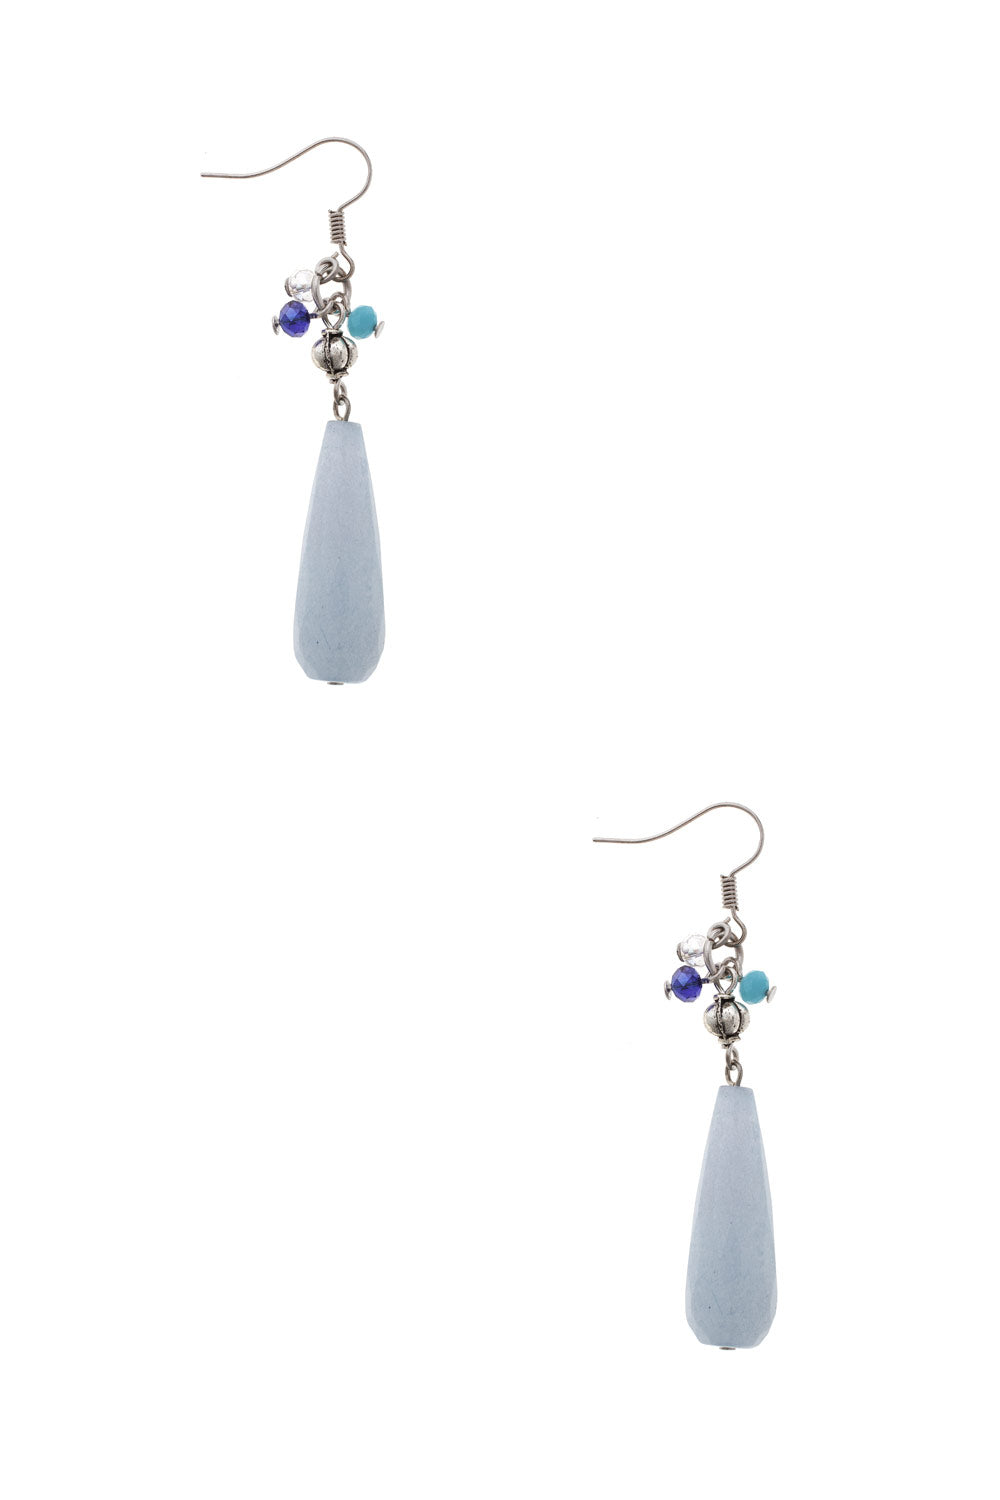 Type 2 Dew Drop Earrings